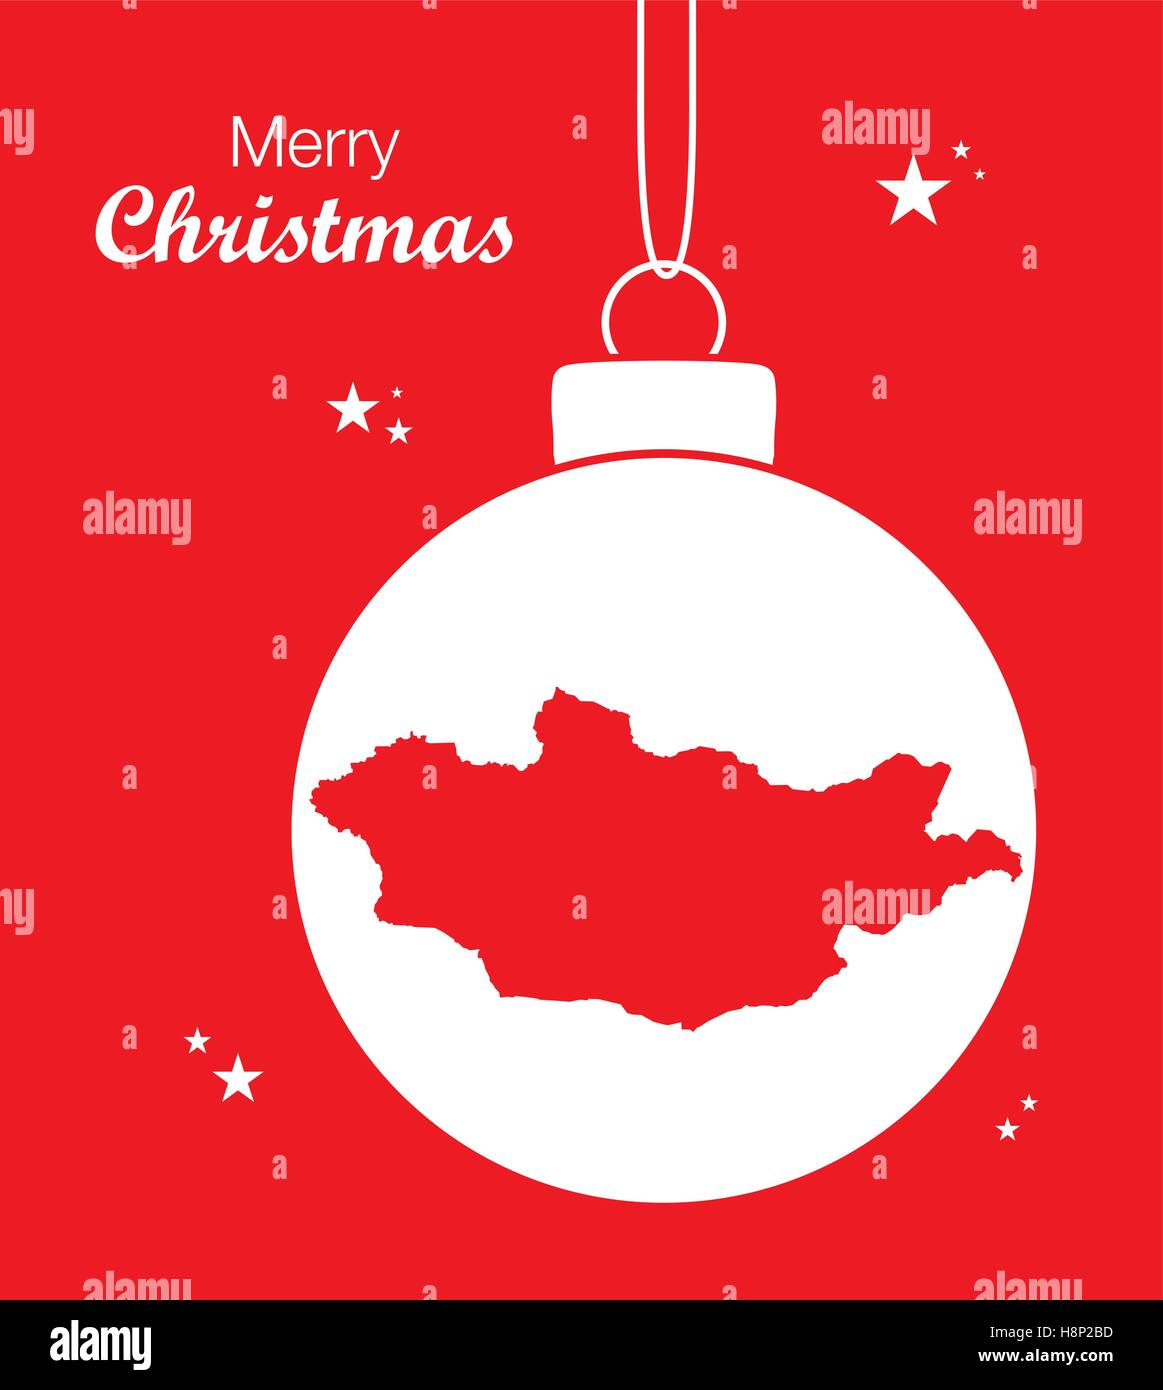 Merry Christmas illustration theme with map of Mongolia - Stock Vector